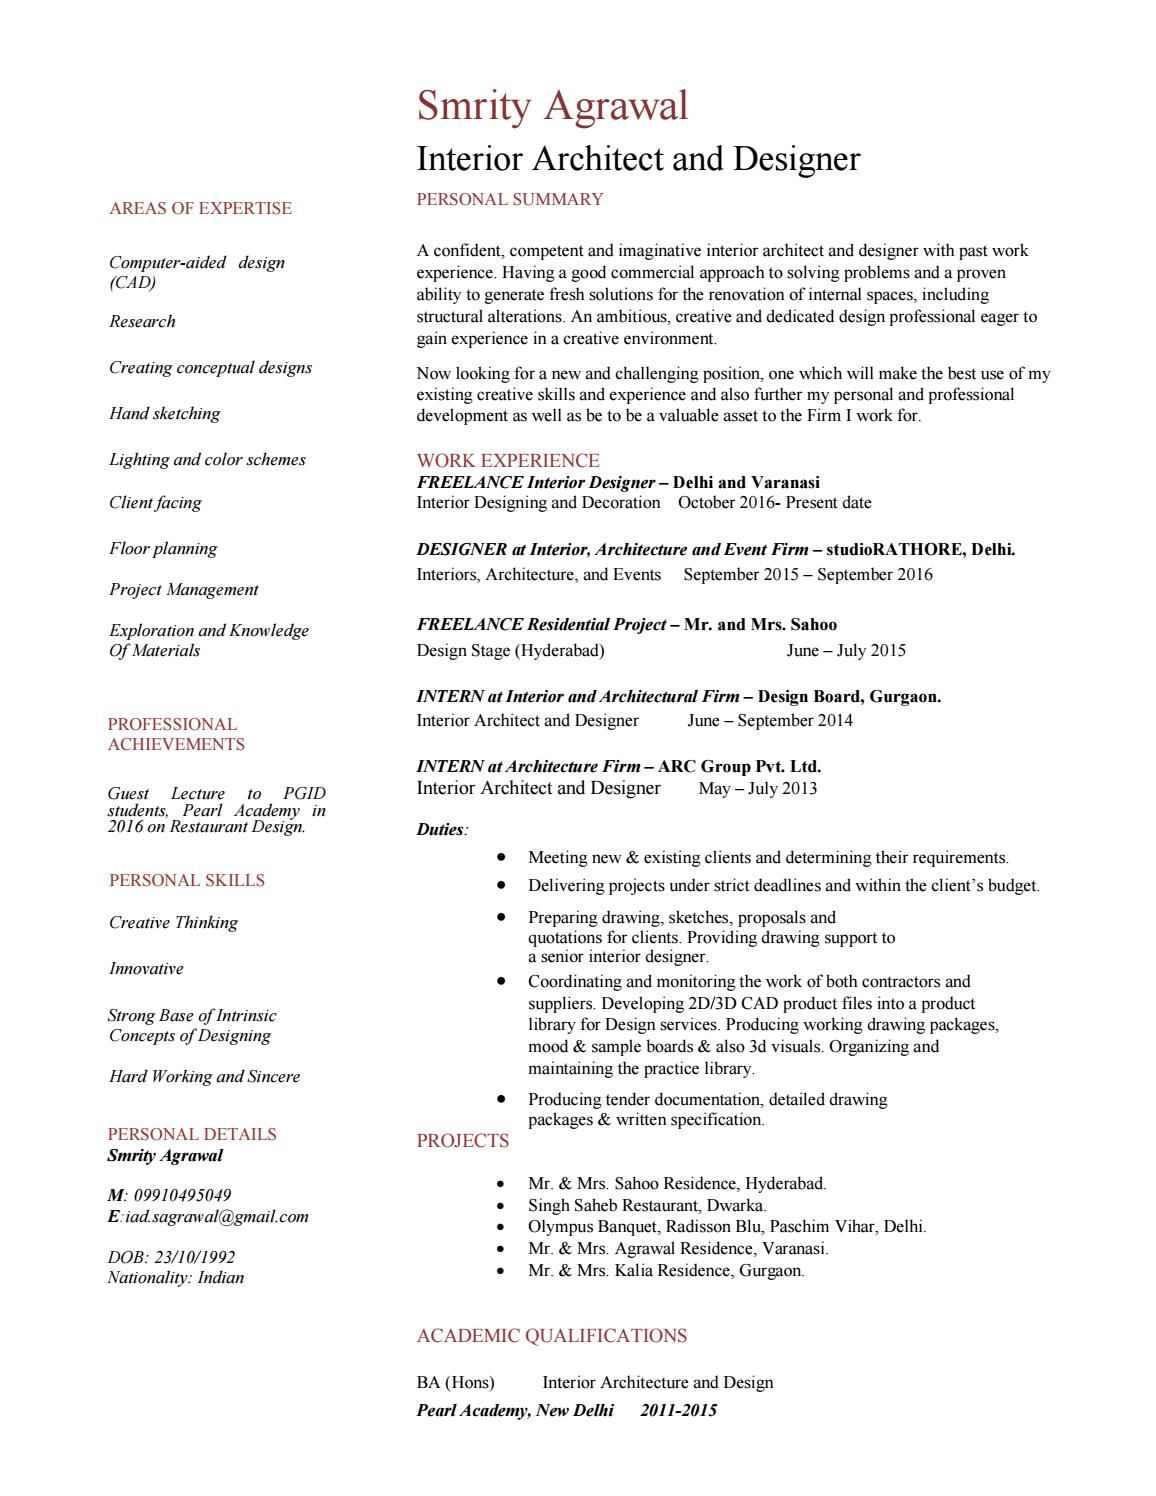 smrity agrawal- resume by smrity agrawal